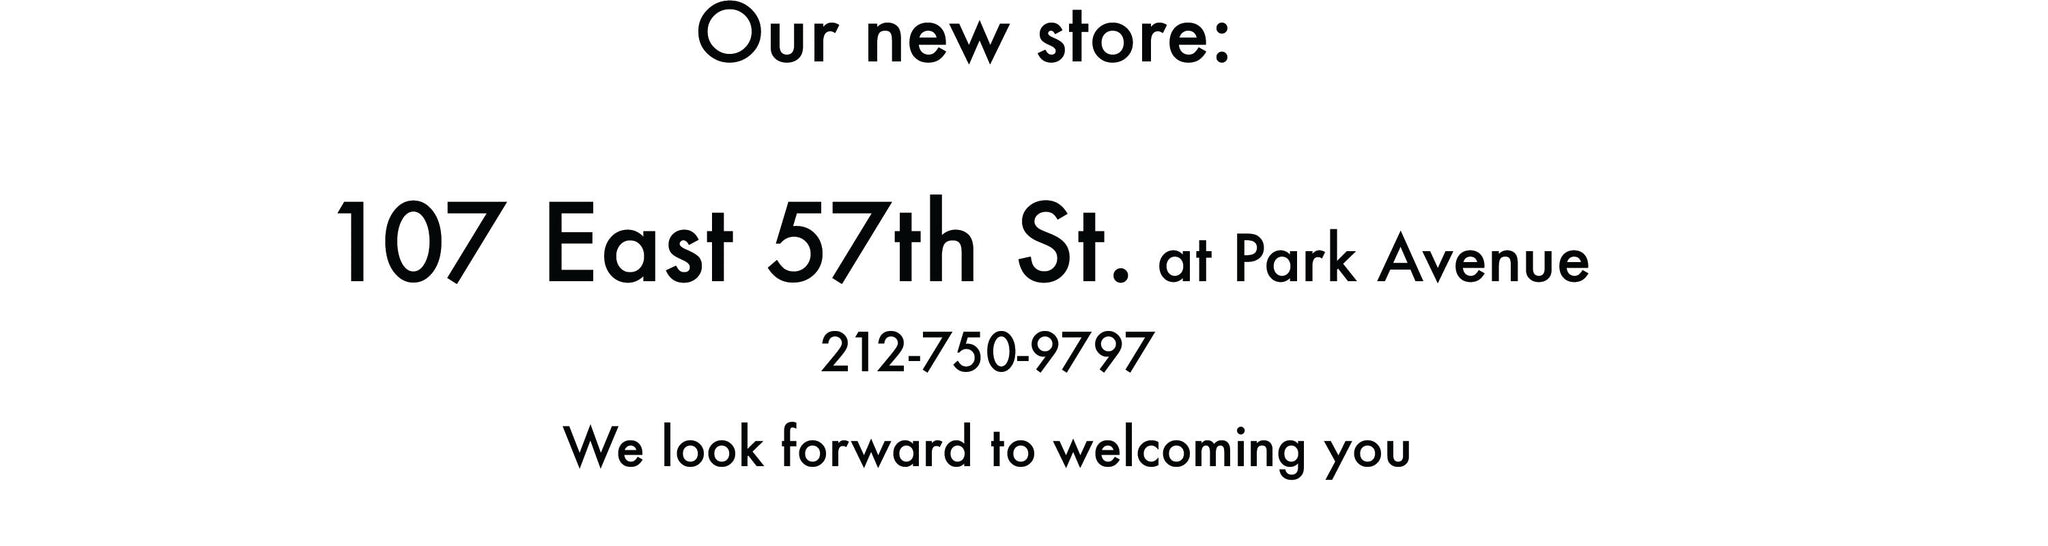 """our new store, 107 East 57th St. at Park Avenue, 212-750-9797, we look forward to welcoming you"